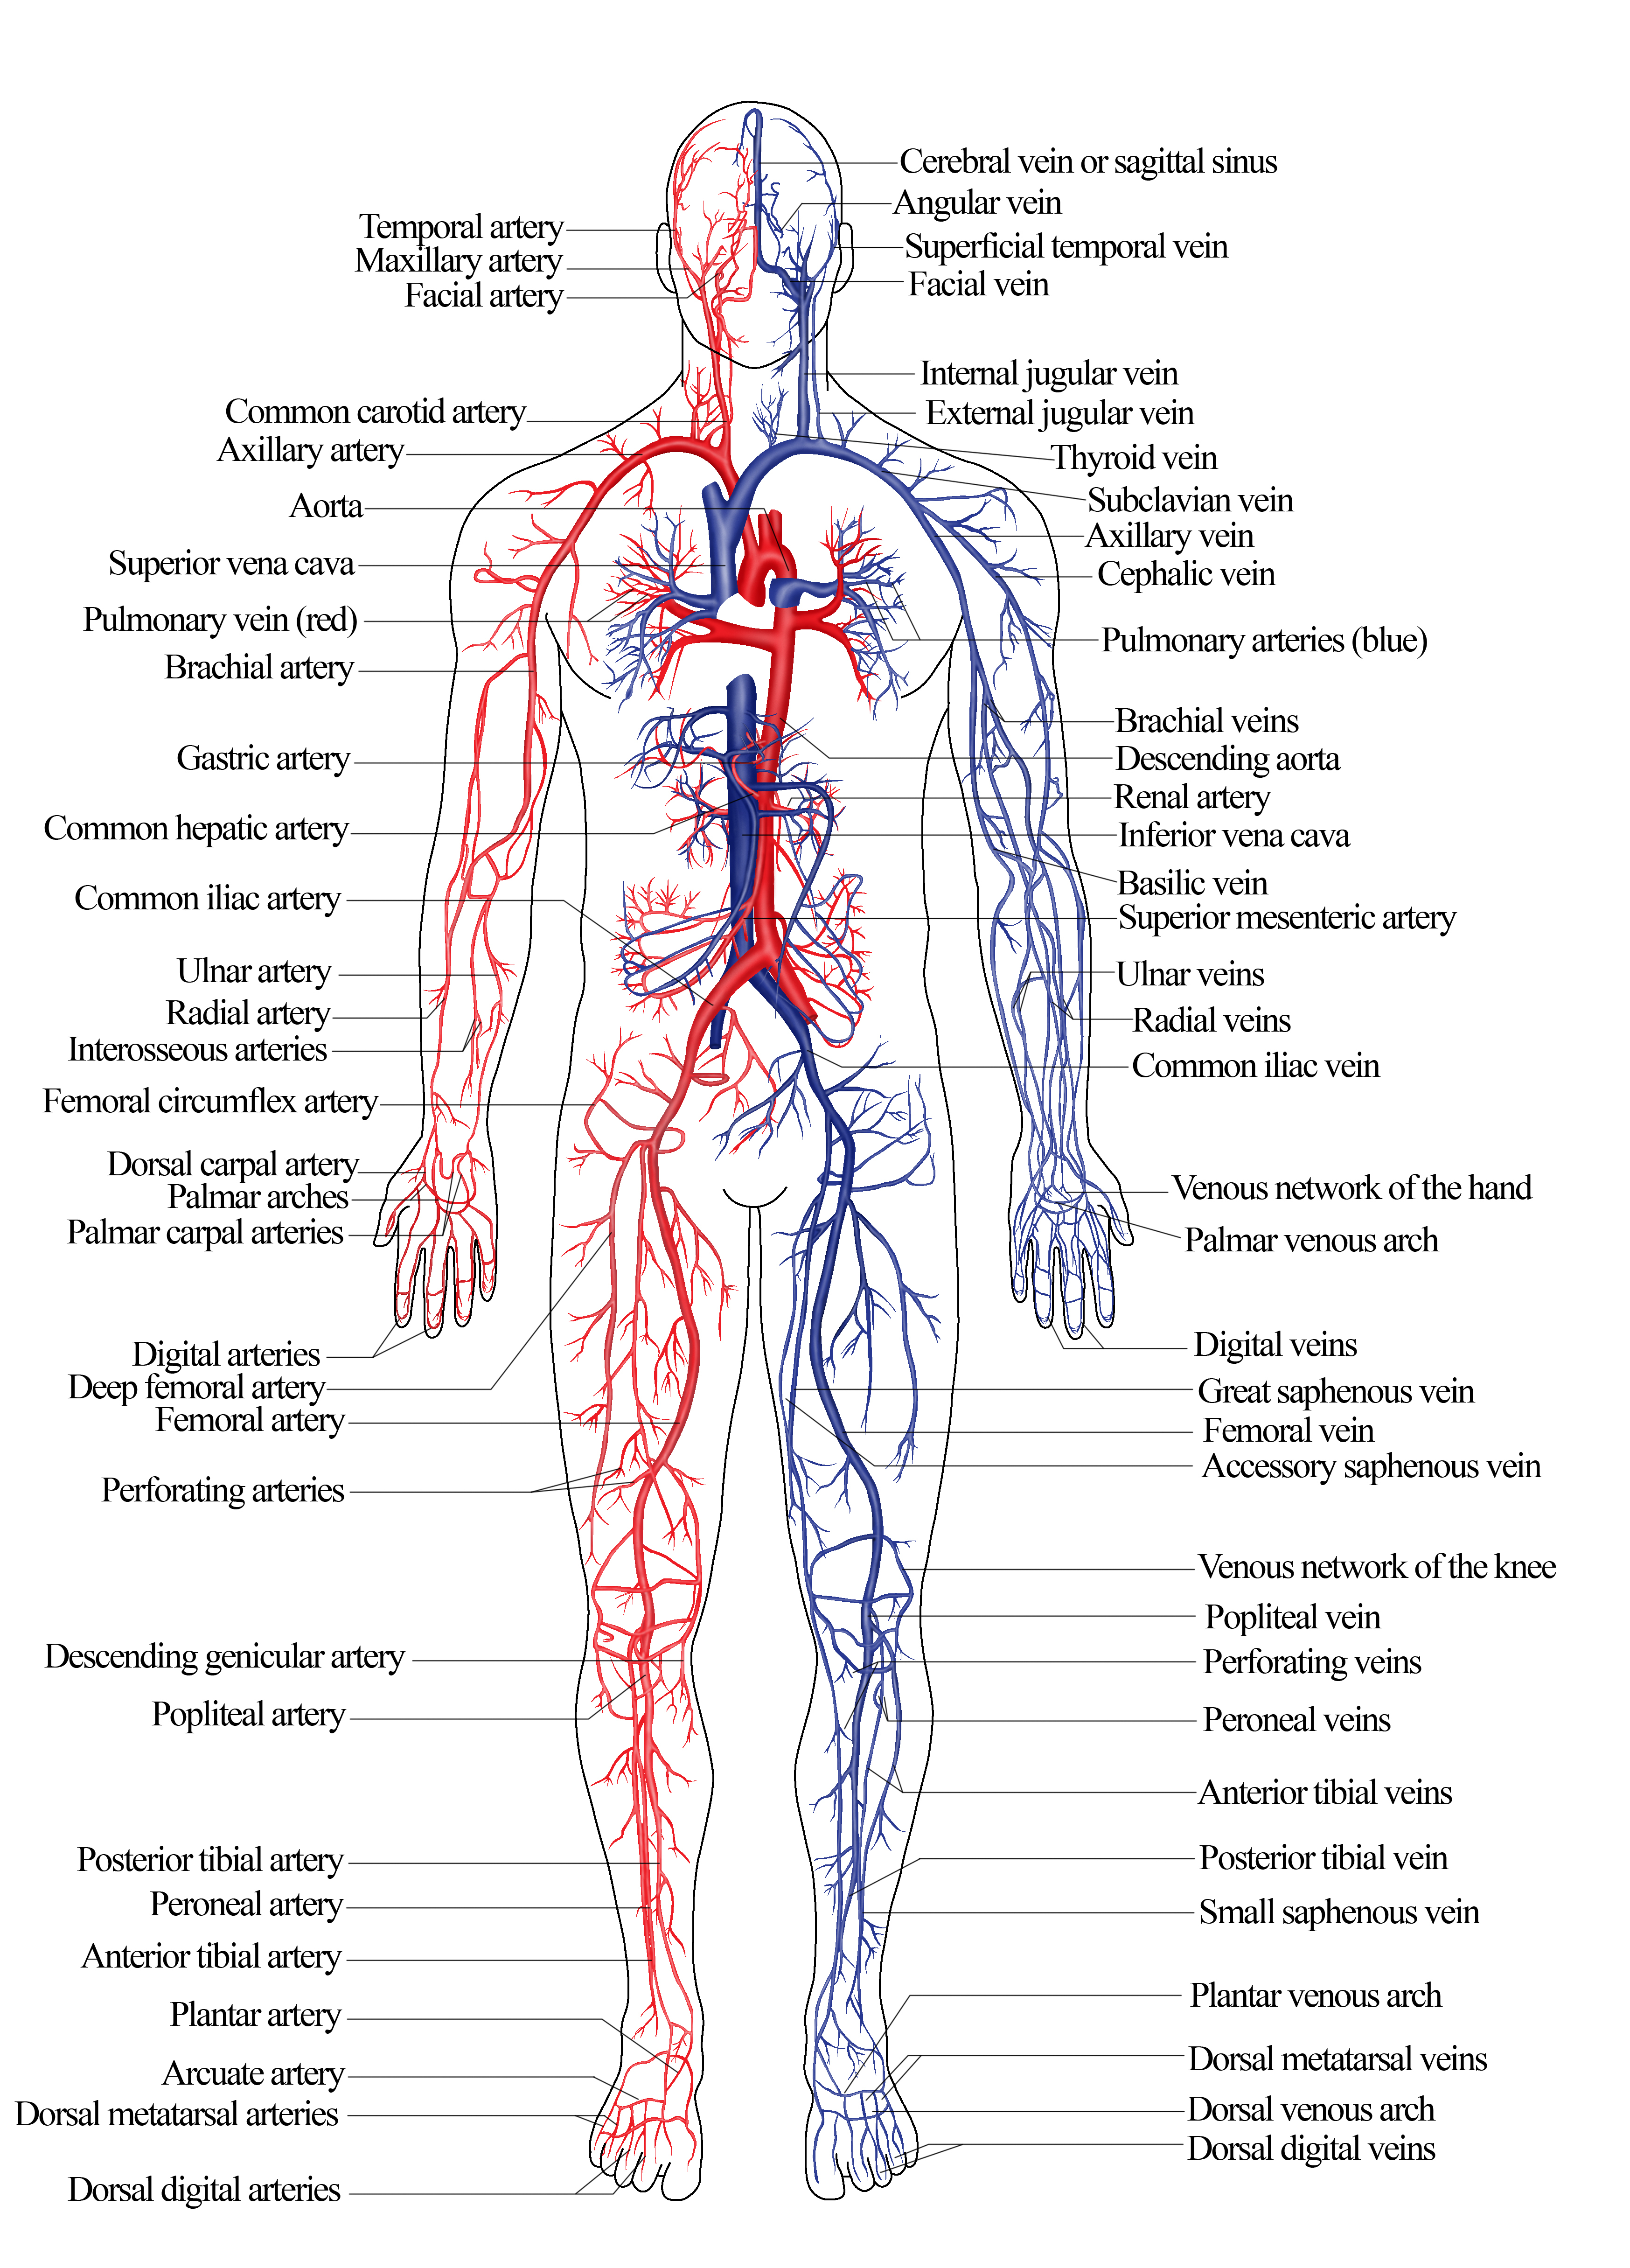 Veins And Arteries Diagram Nroer File Image Arterial And Venous System Of Humans